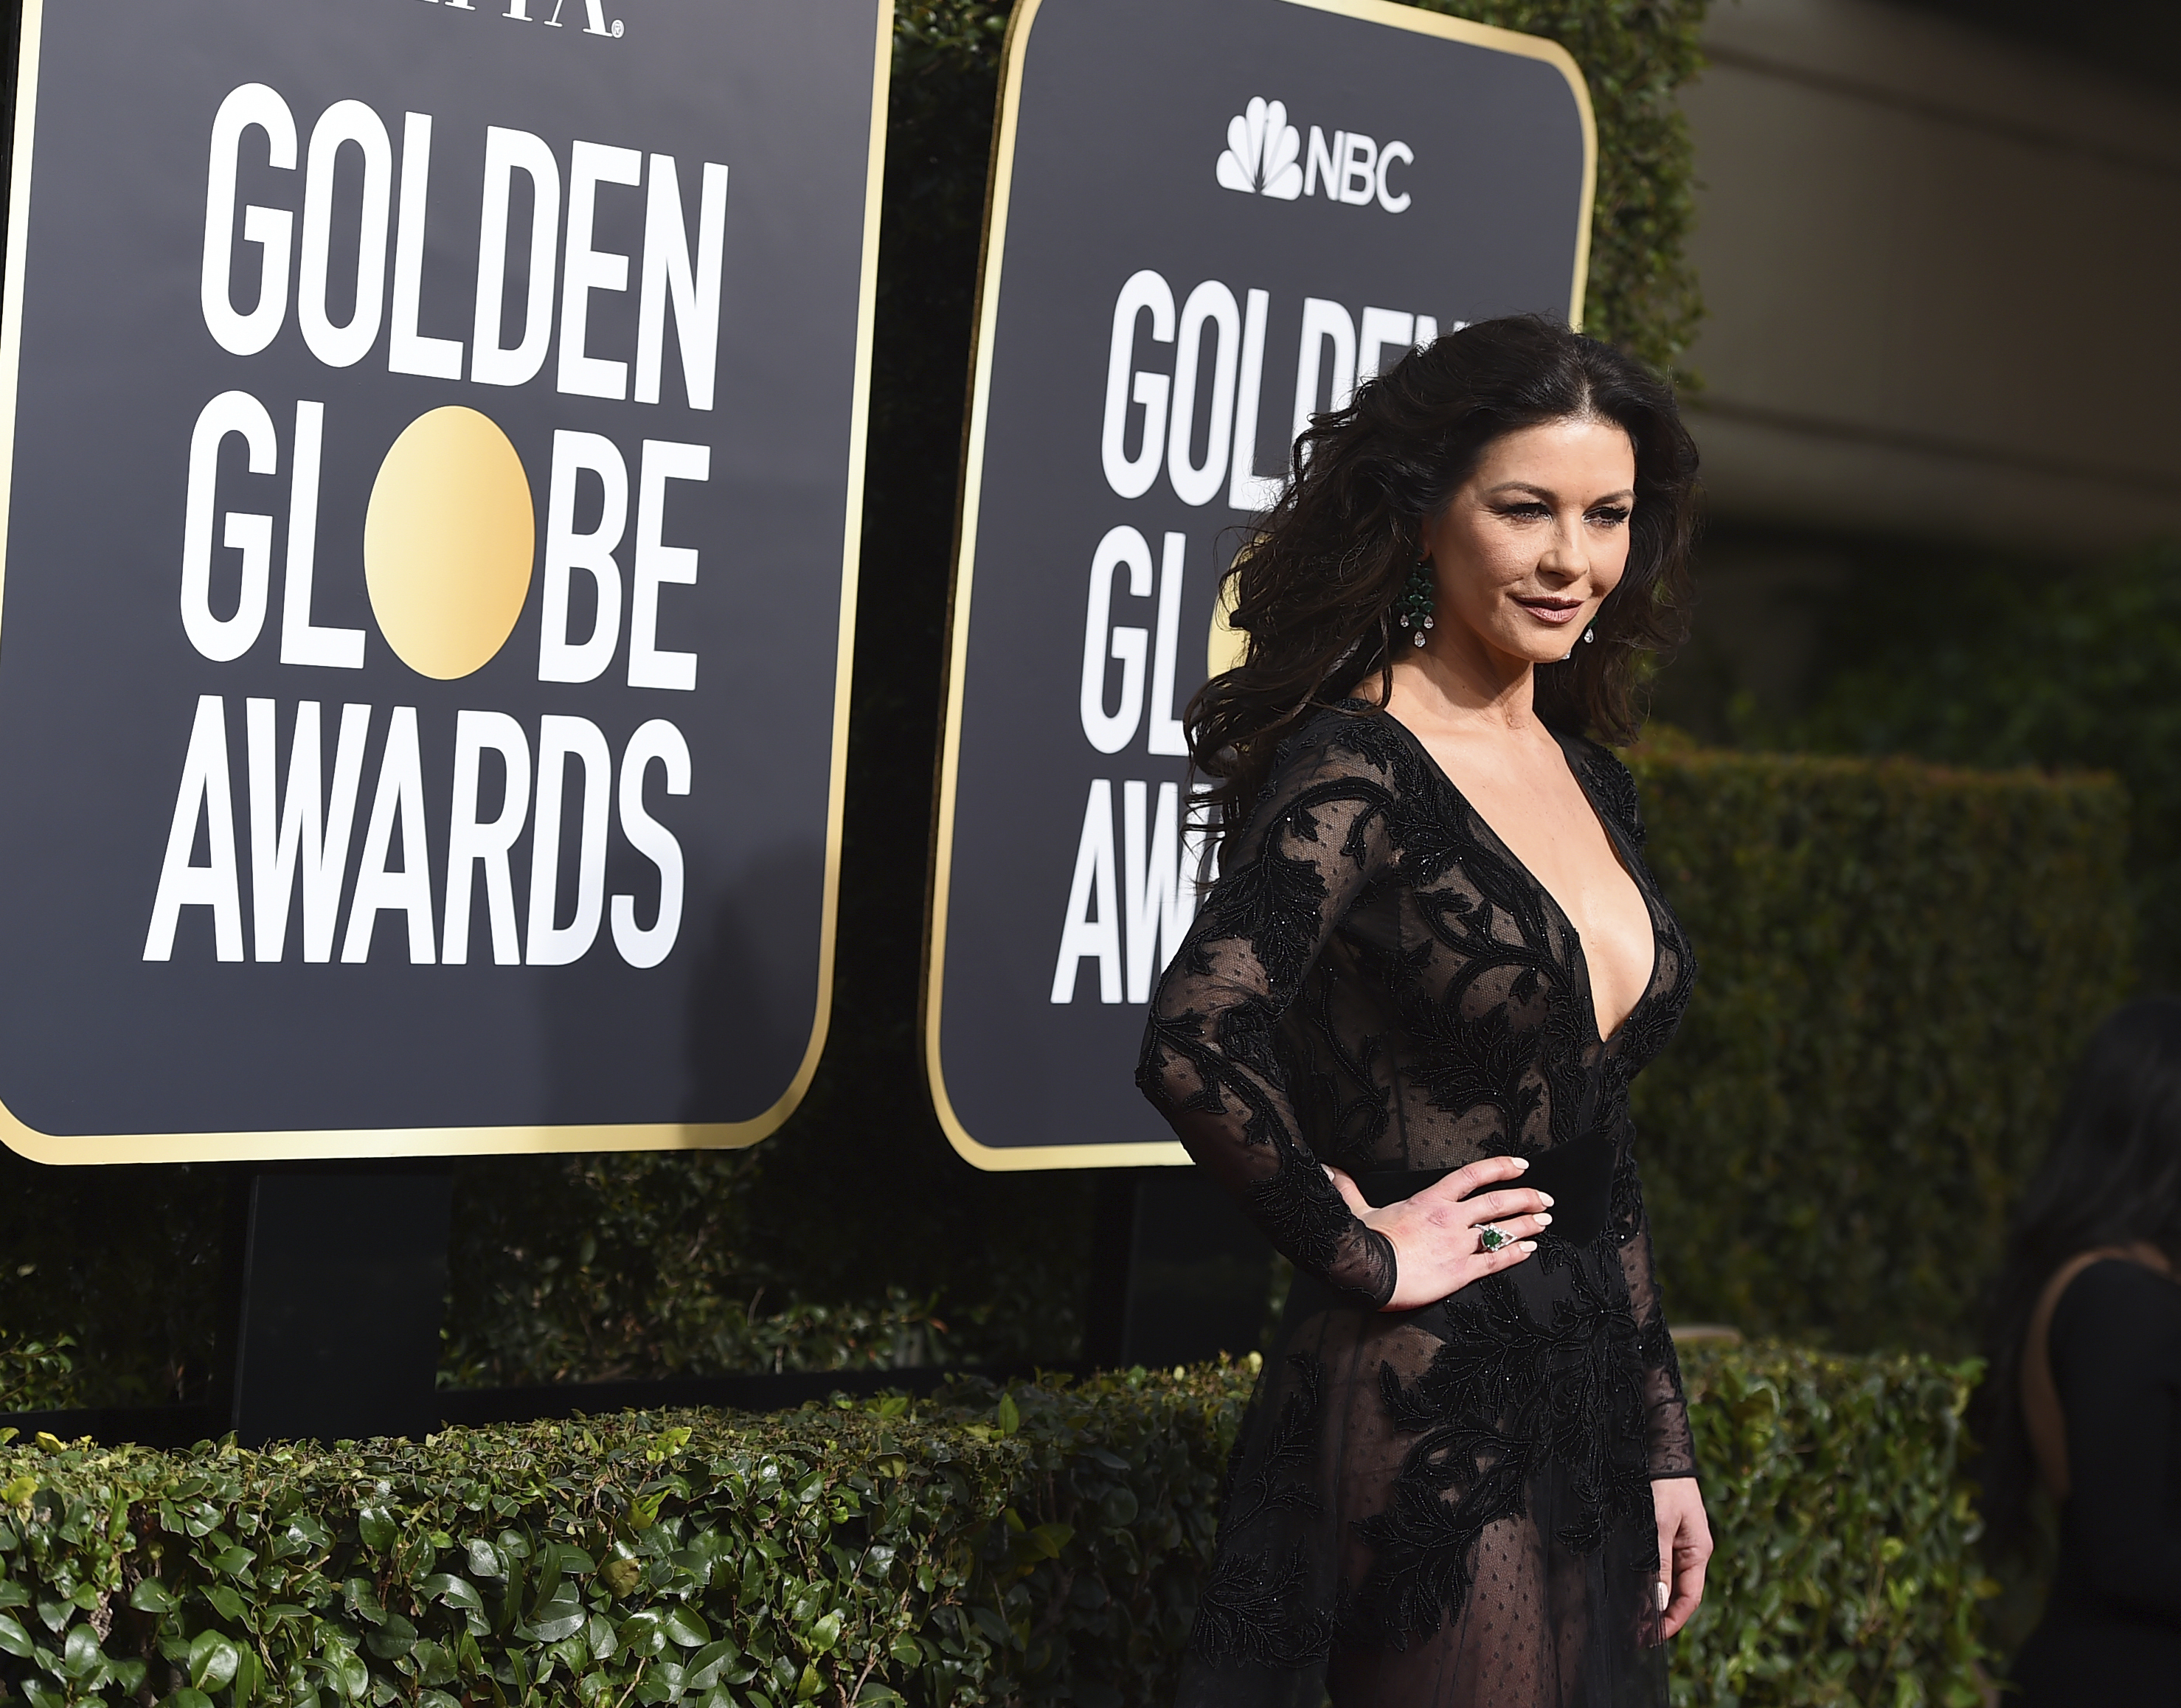 <div class='meta'><div class='origin-logo' data-origin='AP'></div><span class='caption-text' data-credit='Jordan Strauss/Invision/AP'>Catherine Zeta-Jones arrives at the 75th annual Golden Globe Awards at the Beverly Hilton Hotel on Sunday, Jan. 7, 2018, in Beverly Hills, Calif.</span></div>